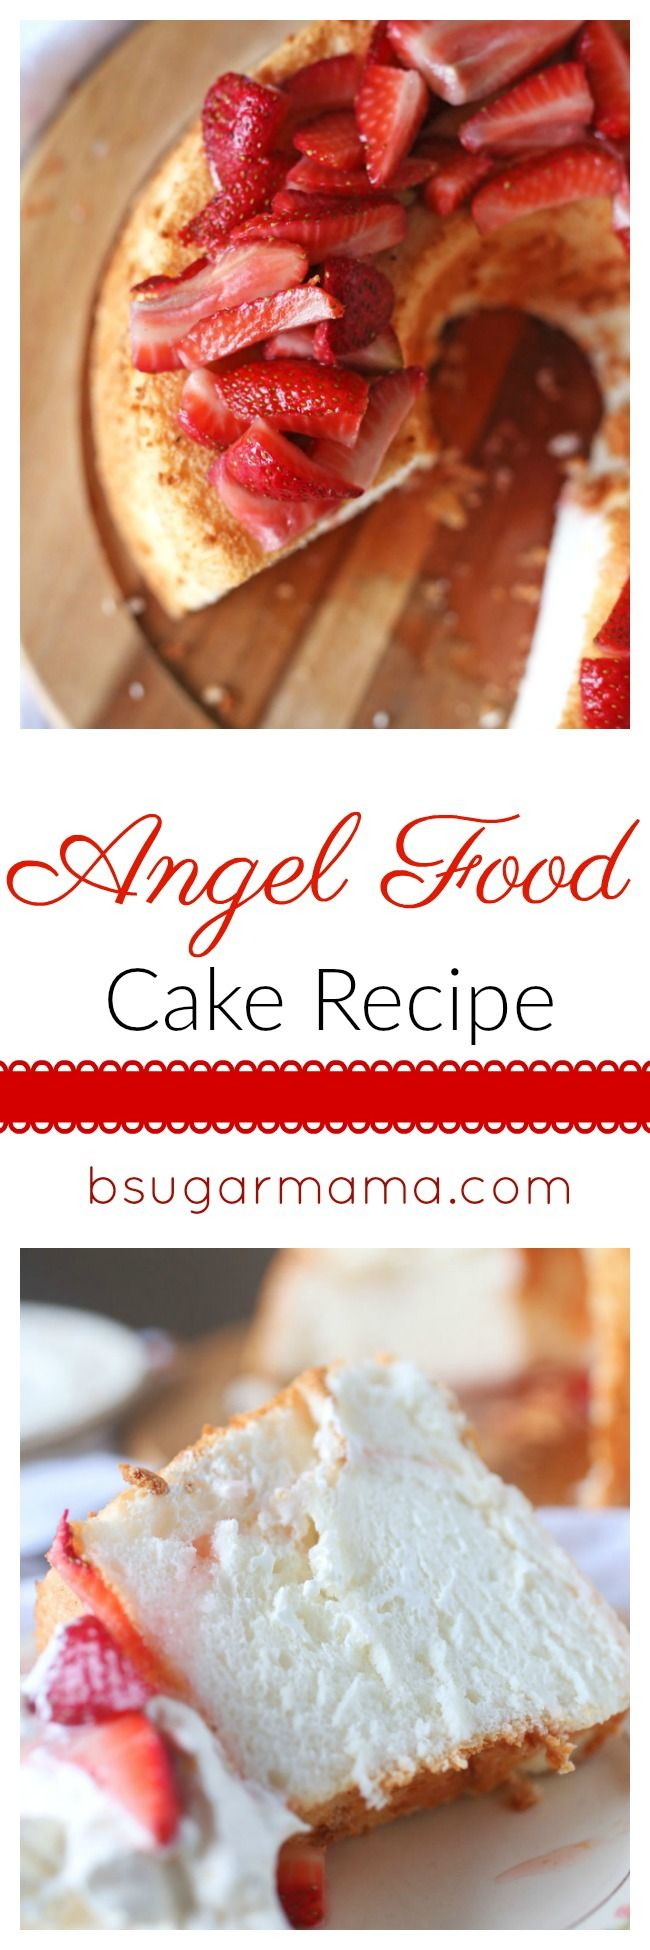 This Angel Food Cake recipe is perfectly sweet, airy, and delicious. Try this Angel Food Cake with an easy strawberry topping for more deliciousness!